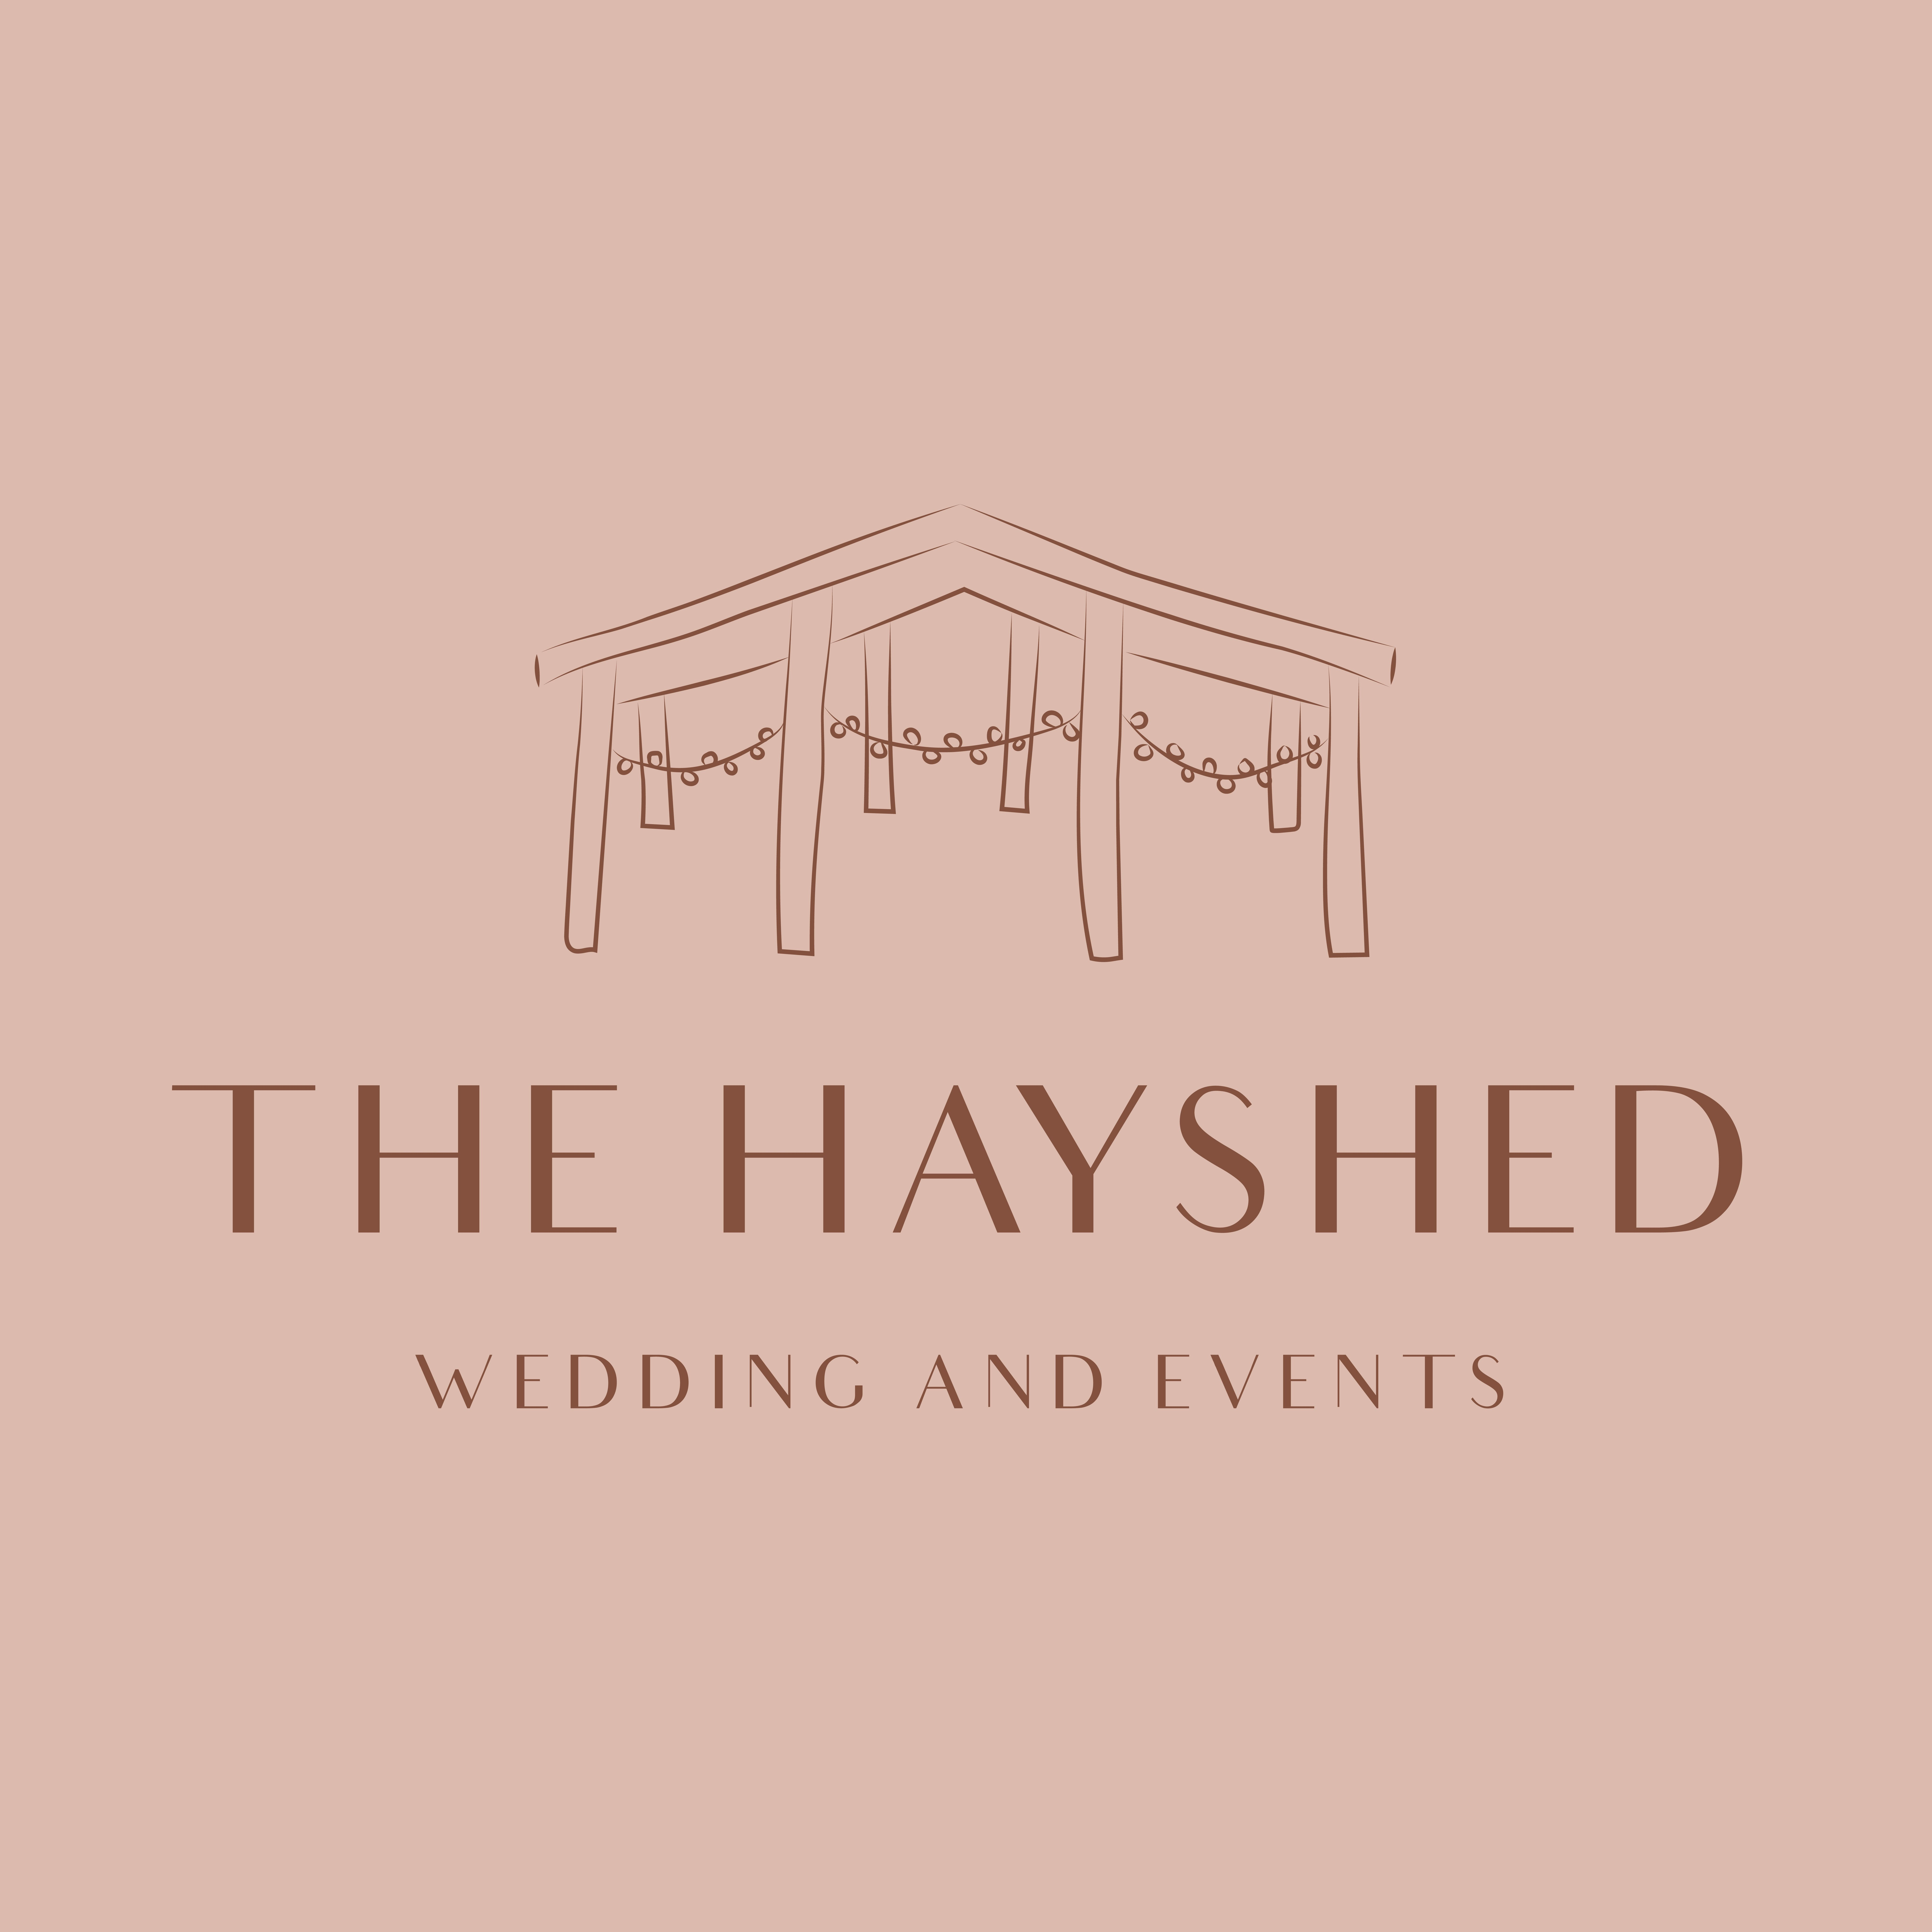 The Hayshed Wedding and Events